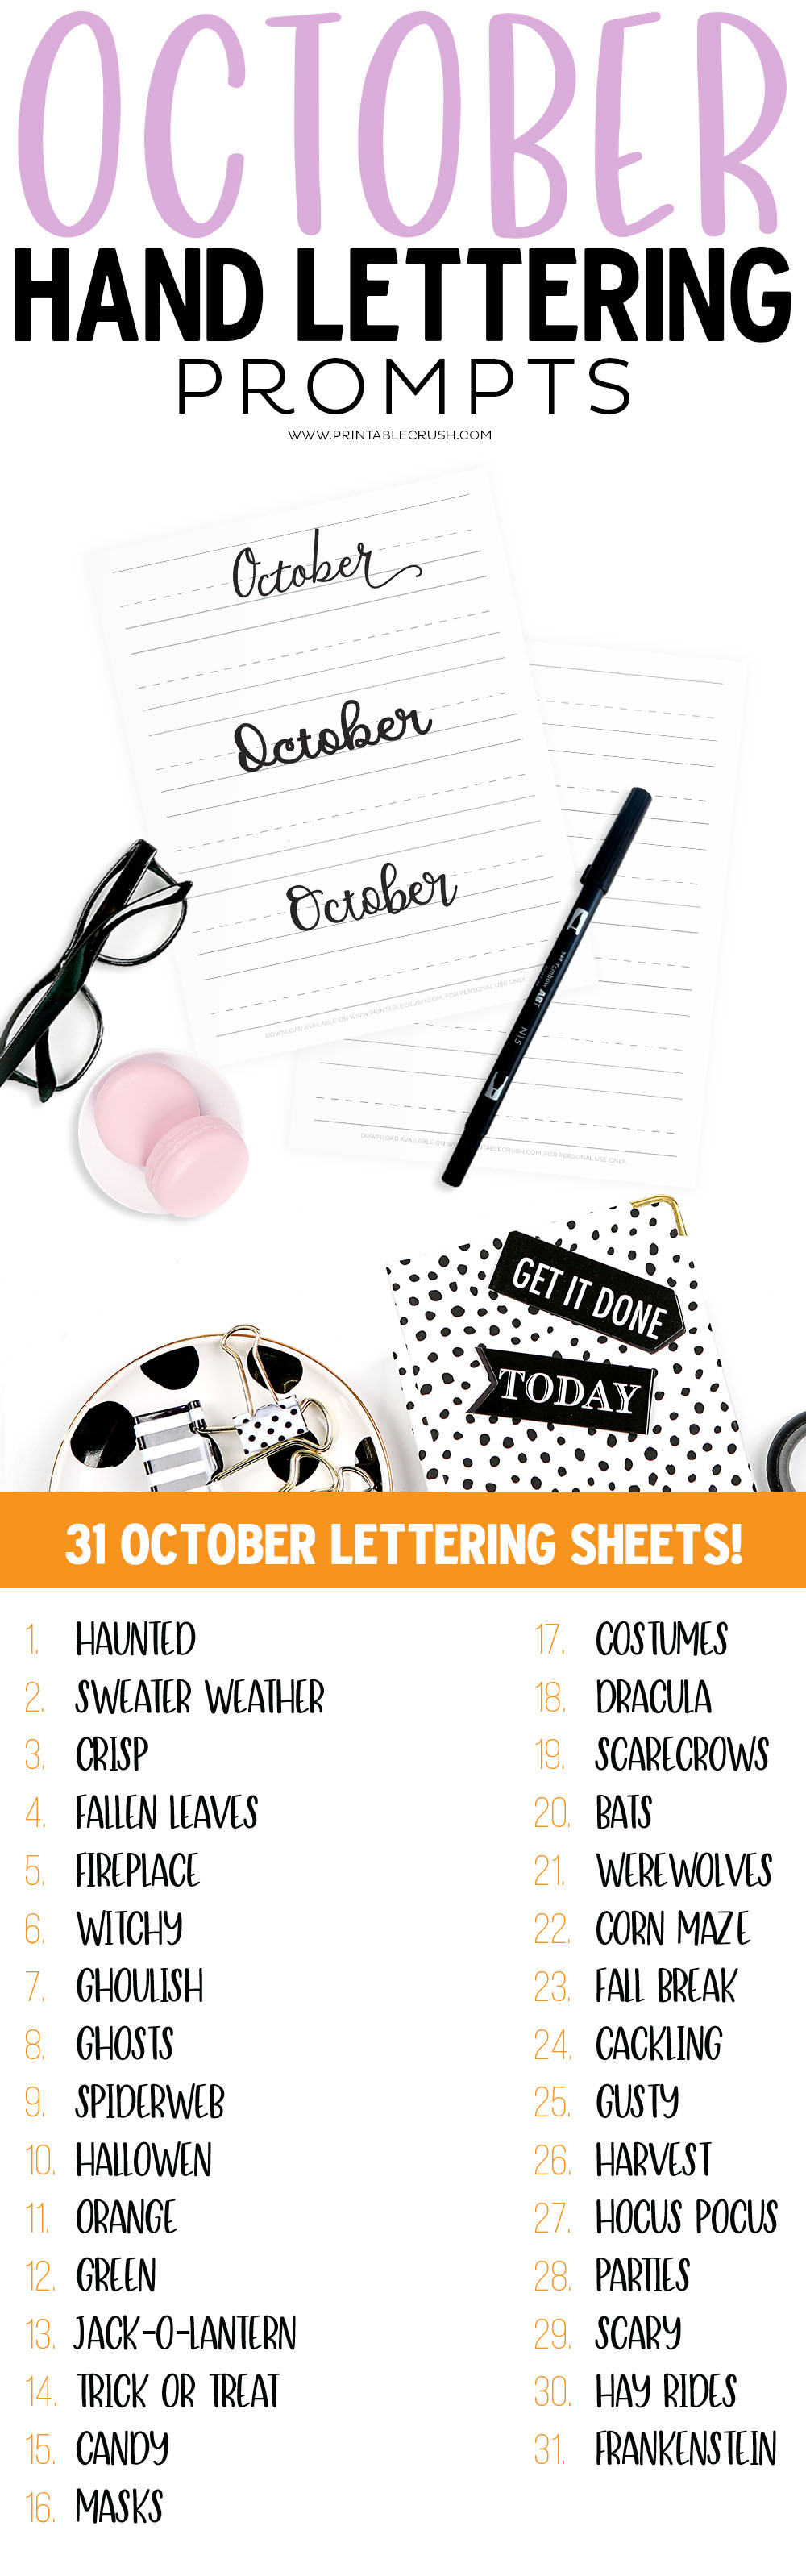 Get 31 Free October Hand Lettering Prompts plus a FREE practice sheet in this blog series to improve your hand lettering skills. You can practice with your own writing, or try it with the lettering worksheets from my shop!